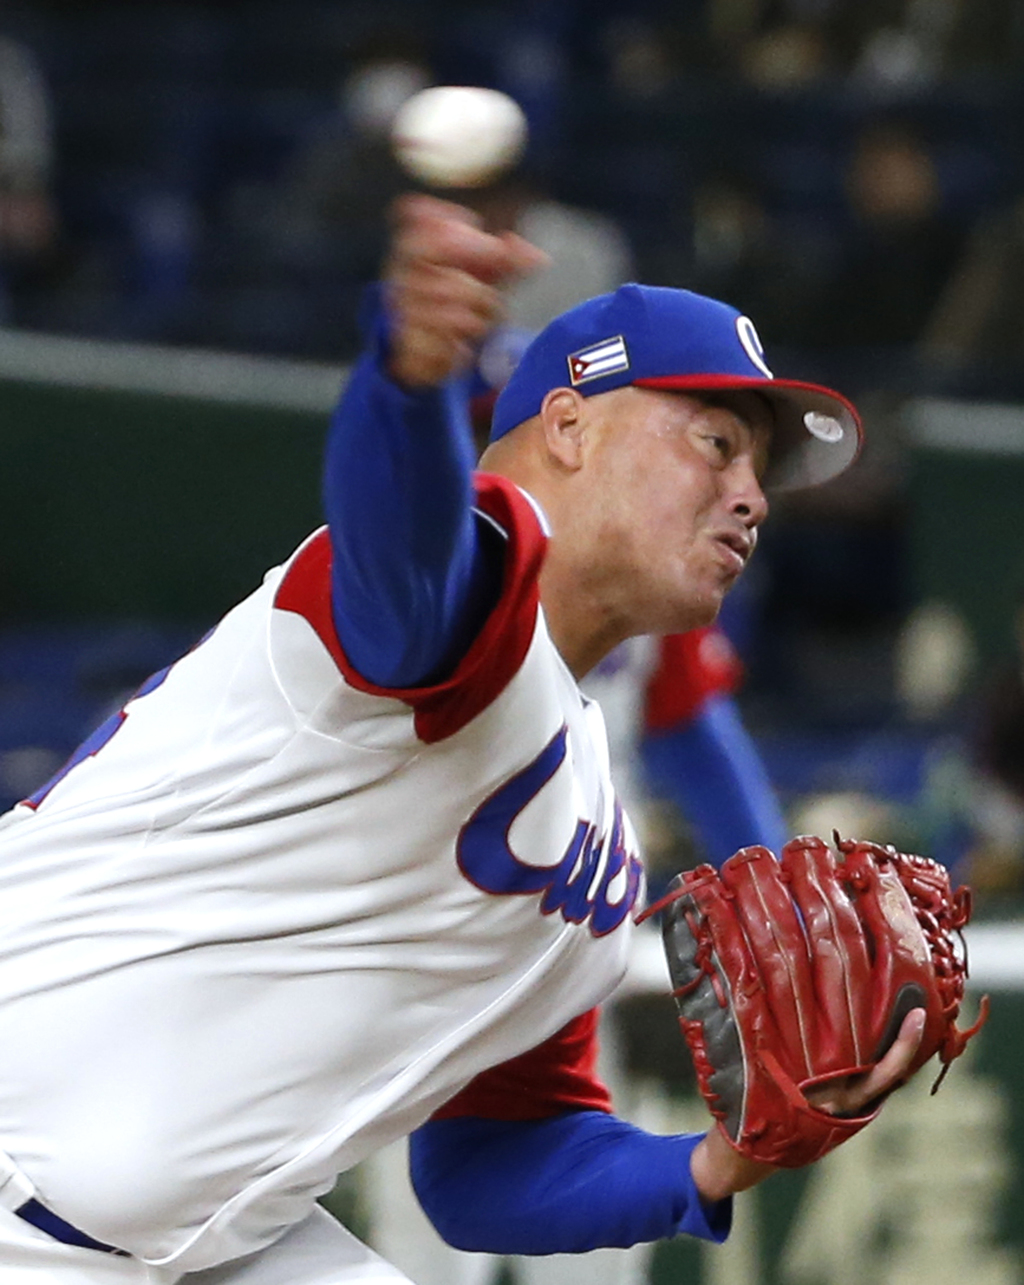 Cuba's closer Miguel Lahera pitches against Australia in the ninth inning of their first round game of the World Baseball Classic at To...